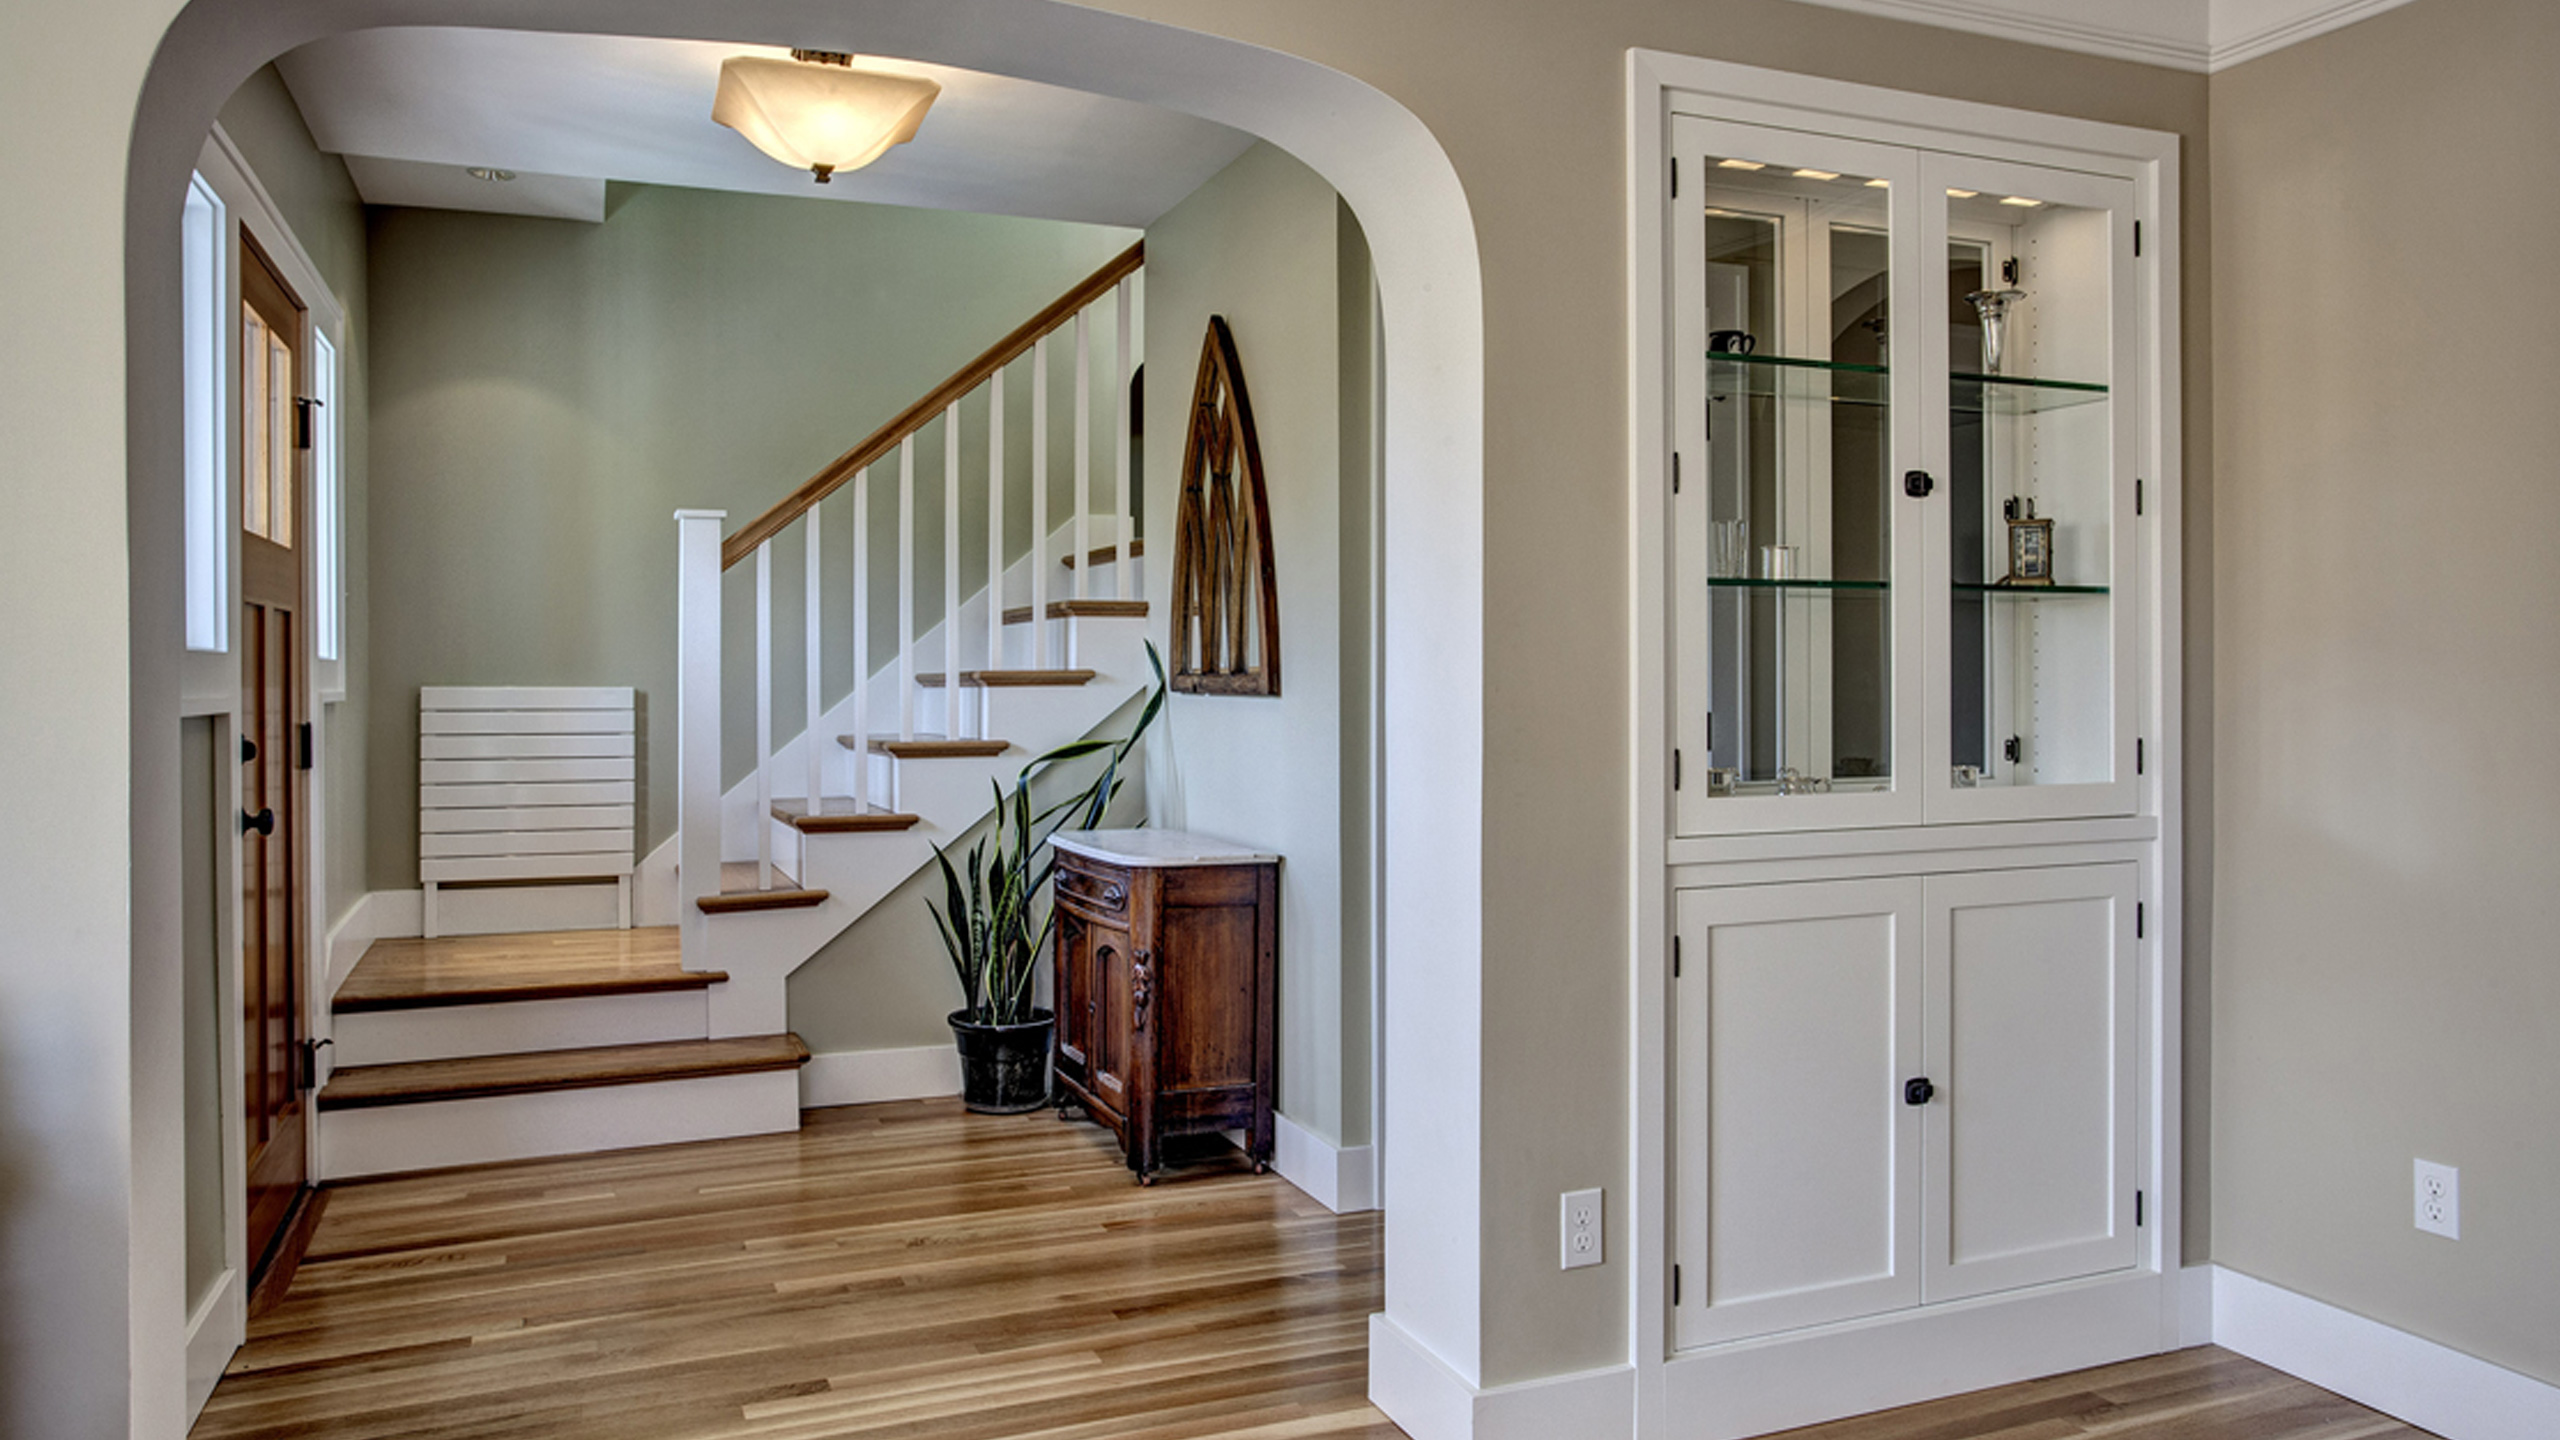 Basement Stair Landing Decorating: The Ups And Downs Of Staircase Design